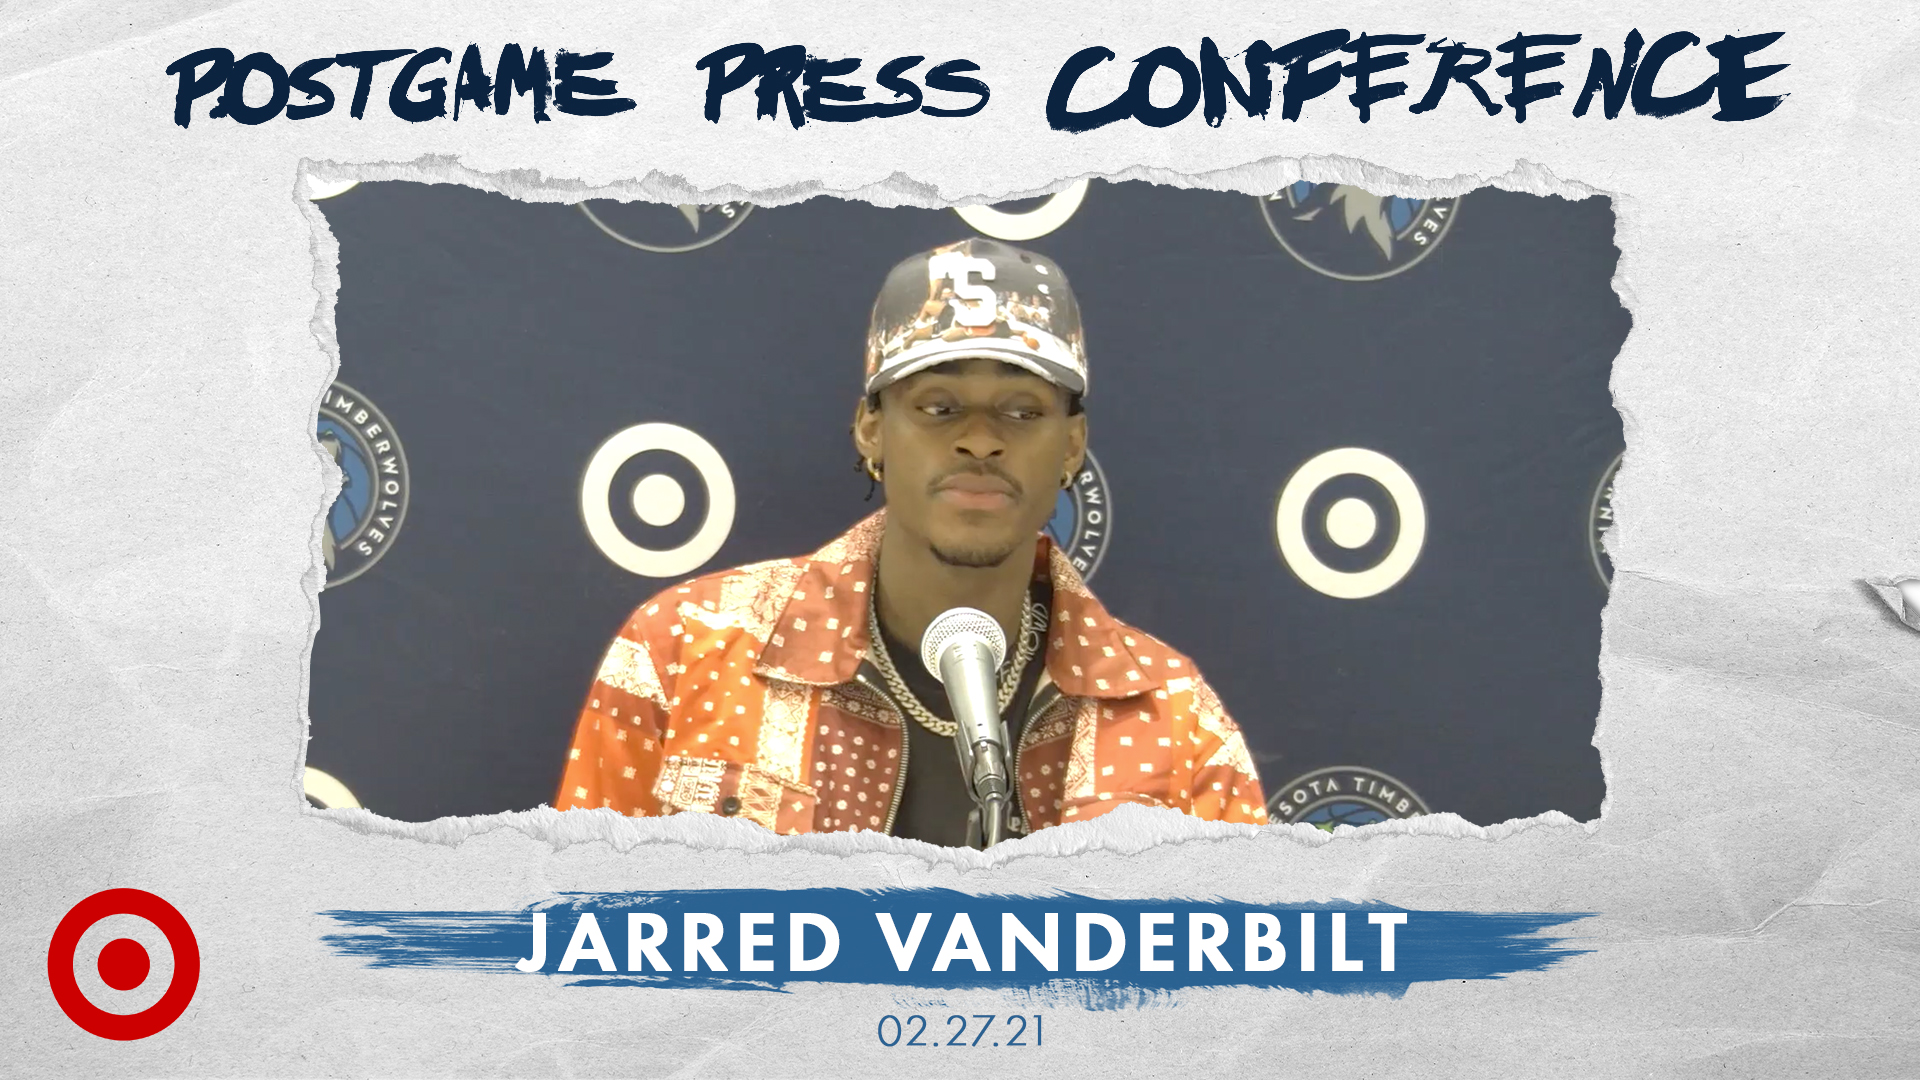 Jarred Vanderbilt Postgame Press Conference - February 27, 2021